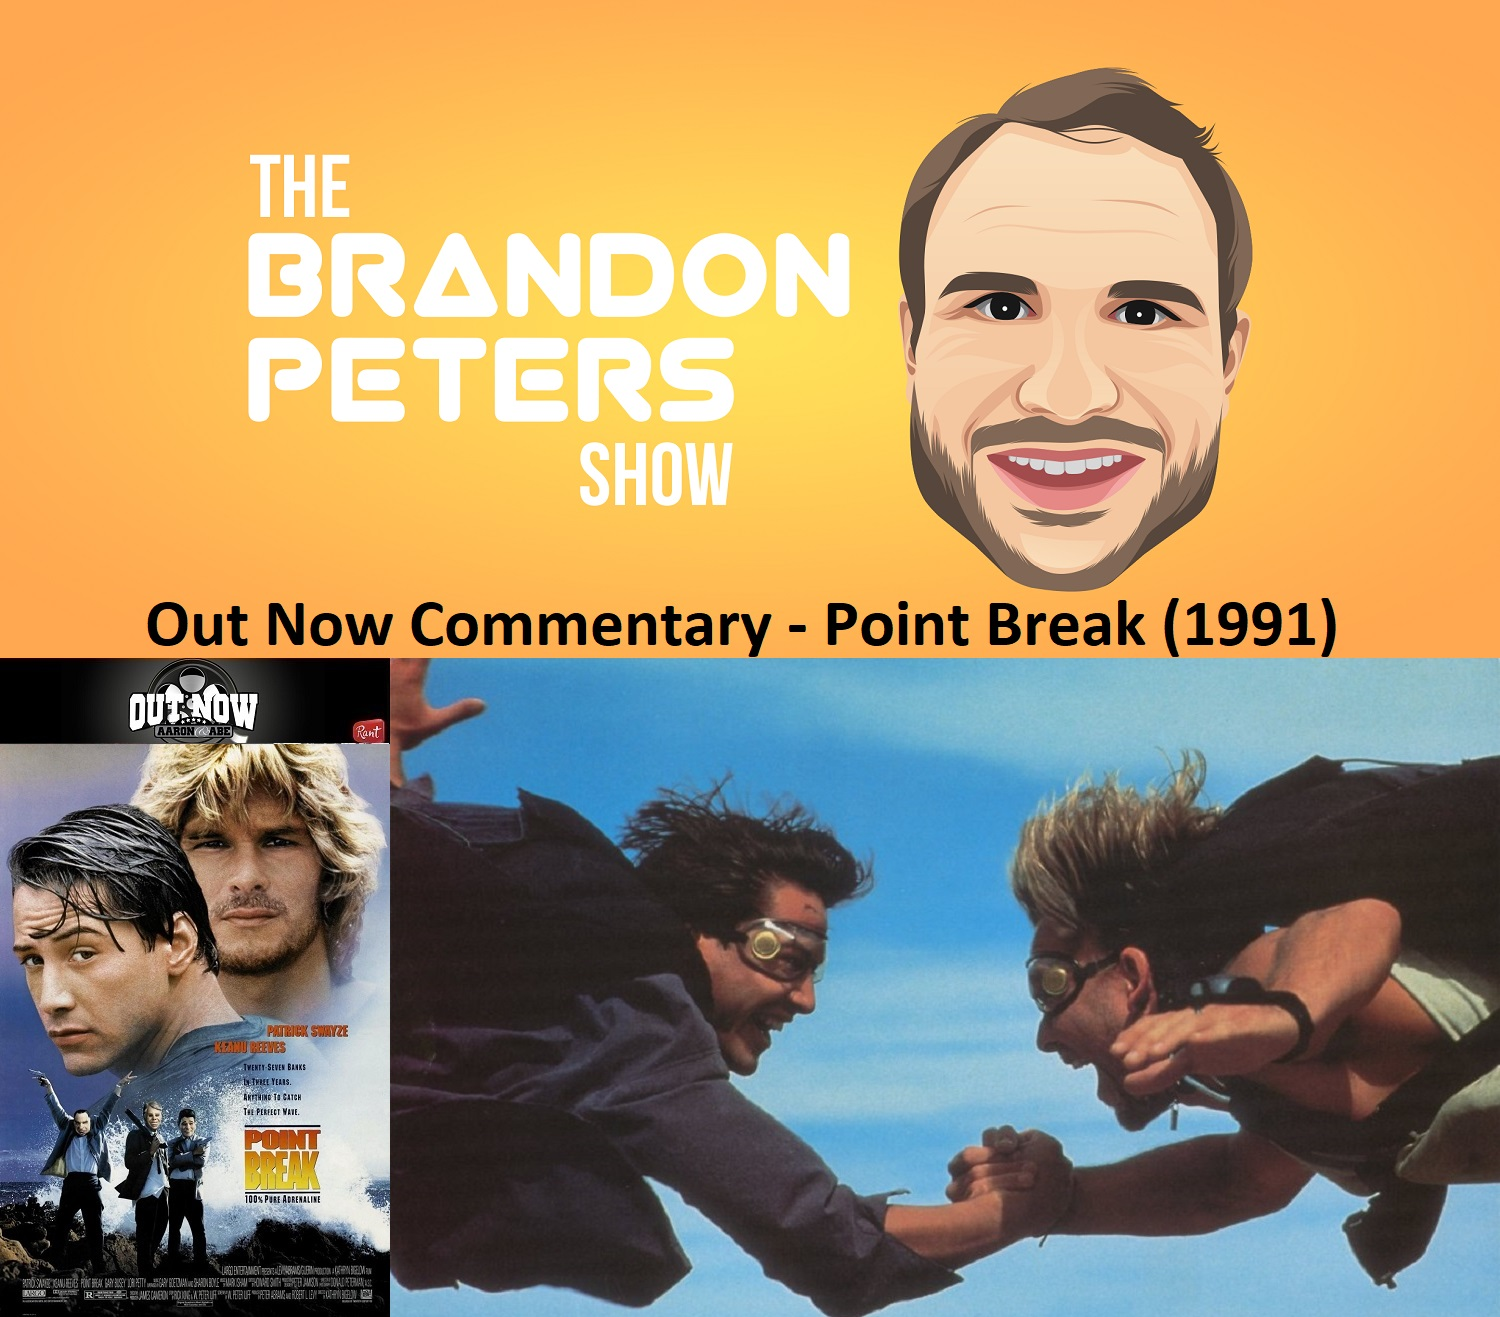 Out Now Commentary – Point Break (1991)